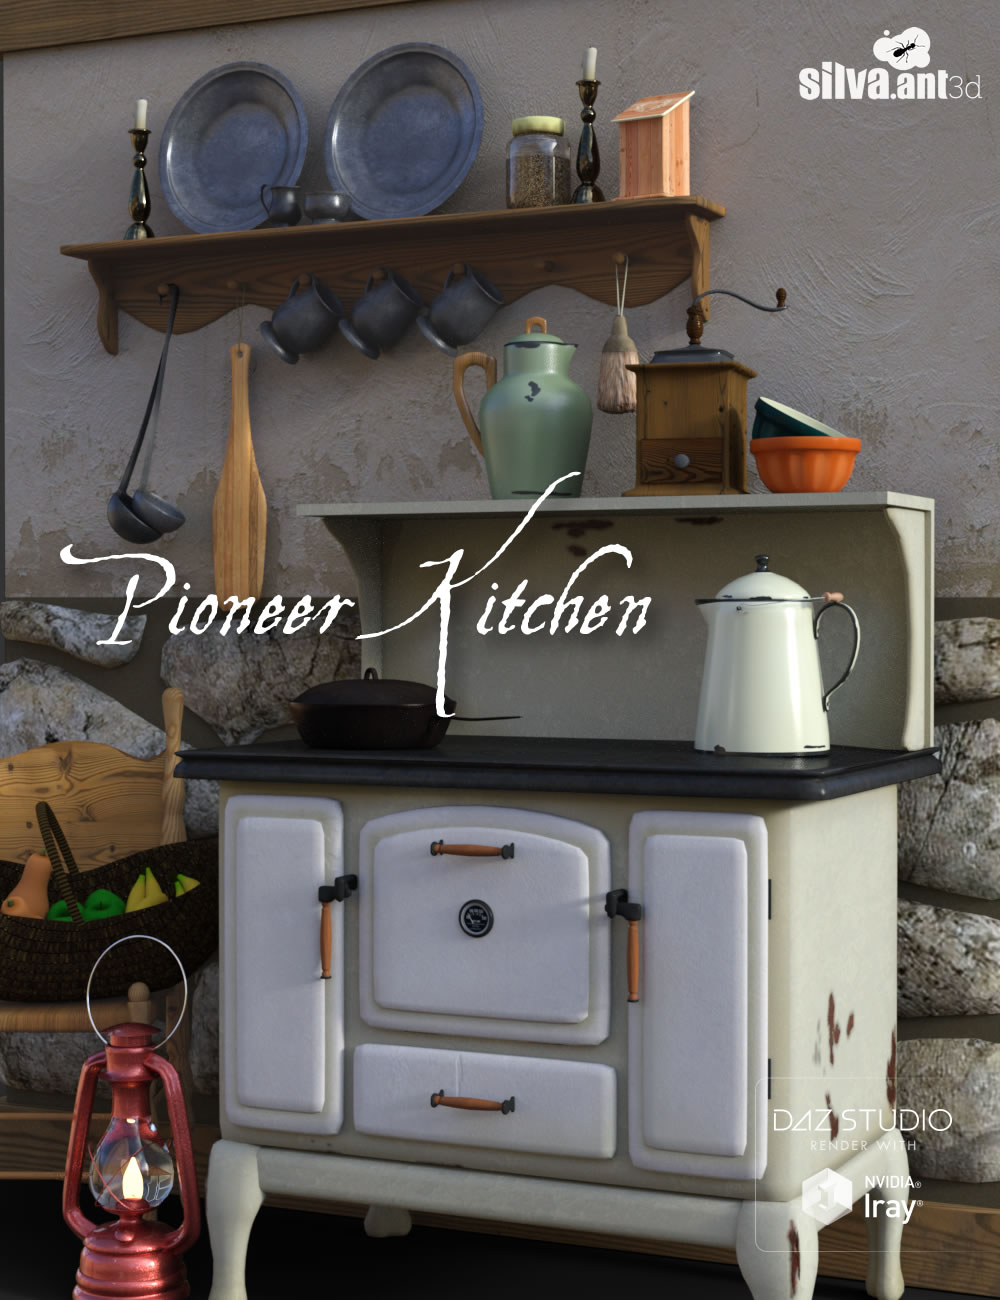 Pioneer Kitchen by: SilvaAnt3d, 3D Models by Daz 3D